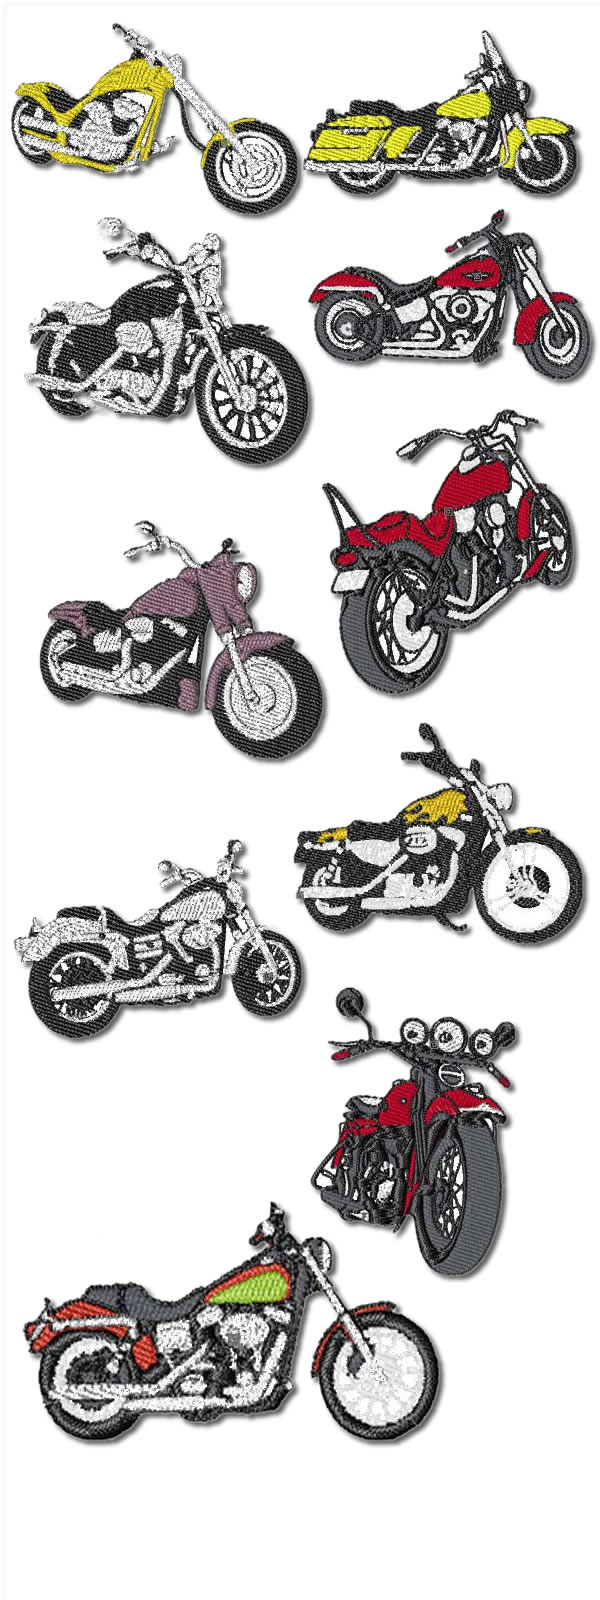 10 Set Of Motorcycles Machine Embroidery Designs